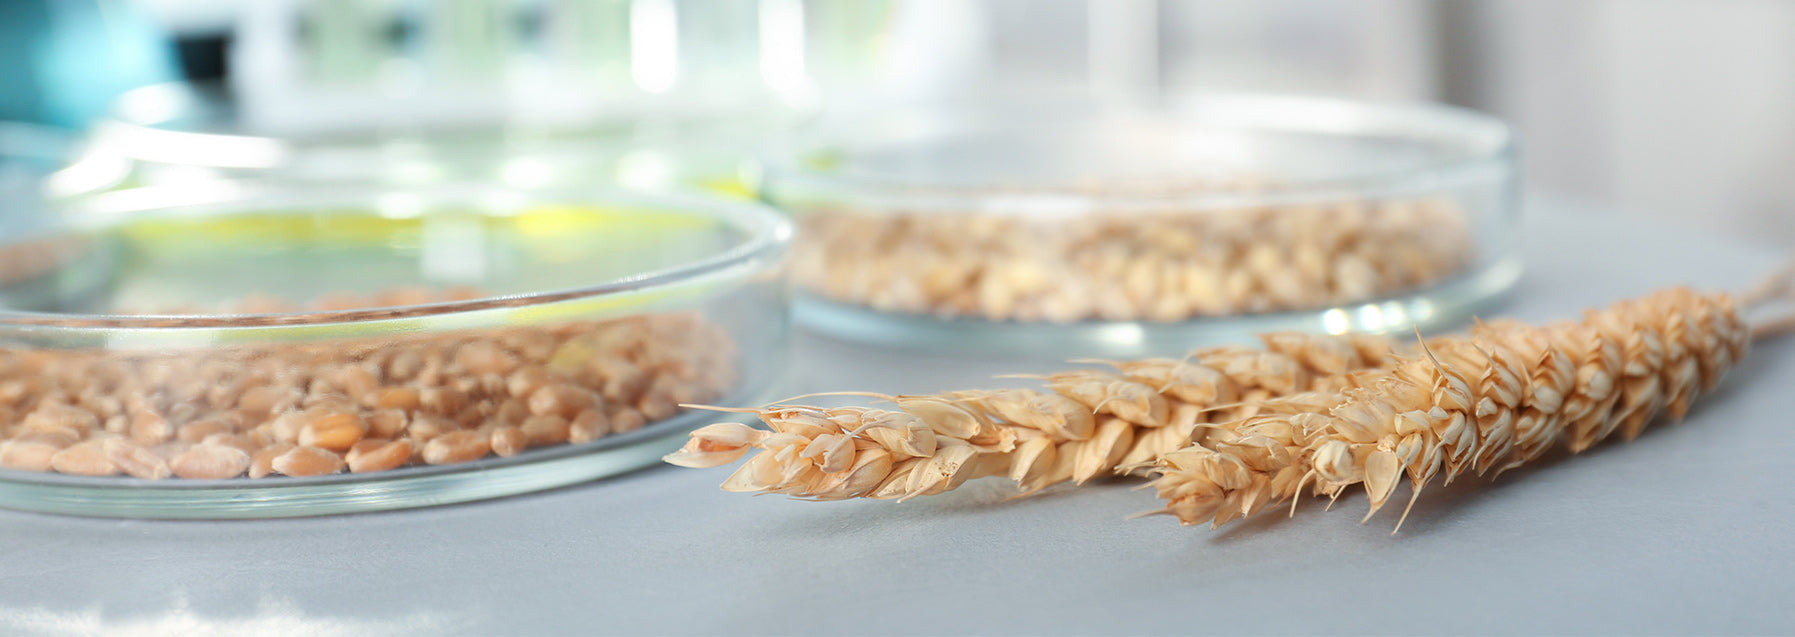 wheat on a table and grain included in petri dishes